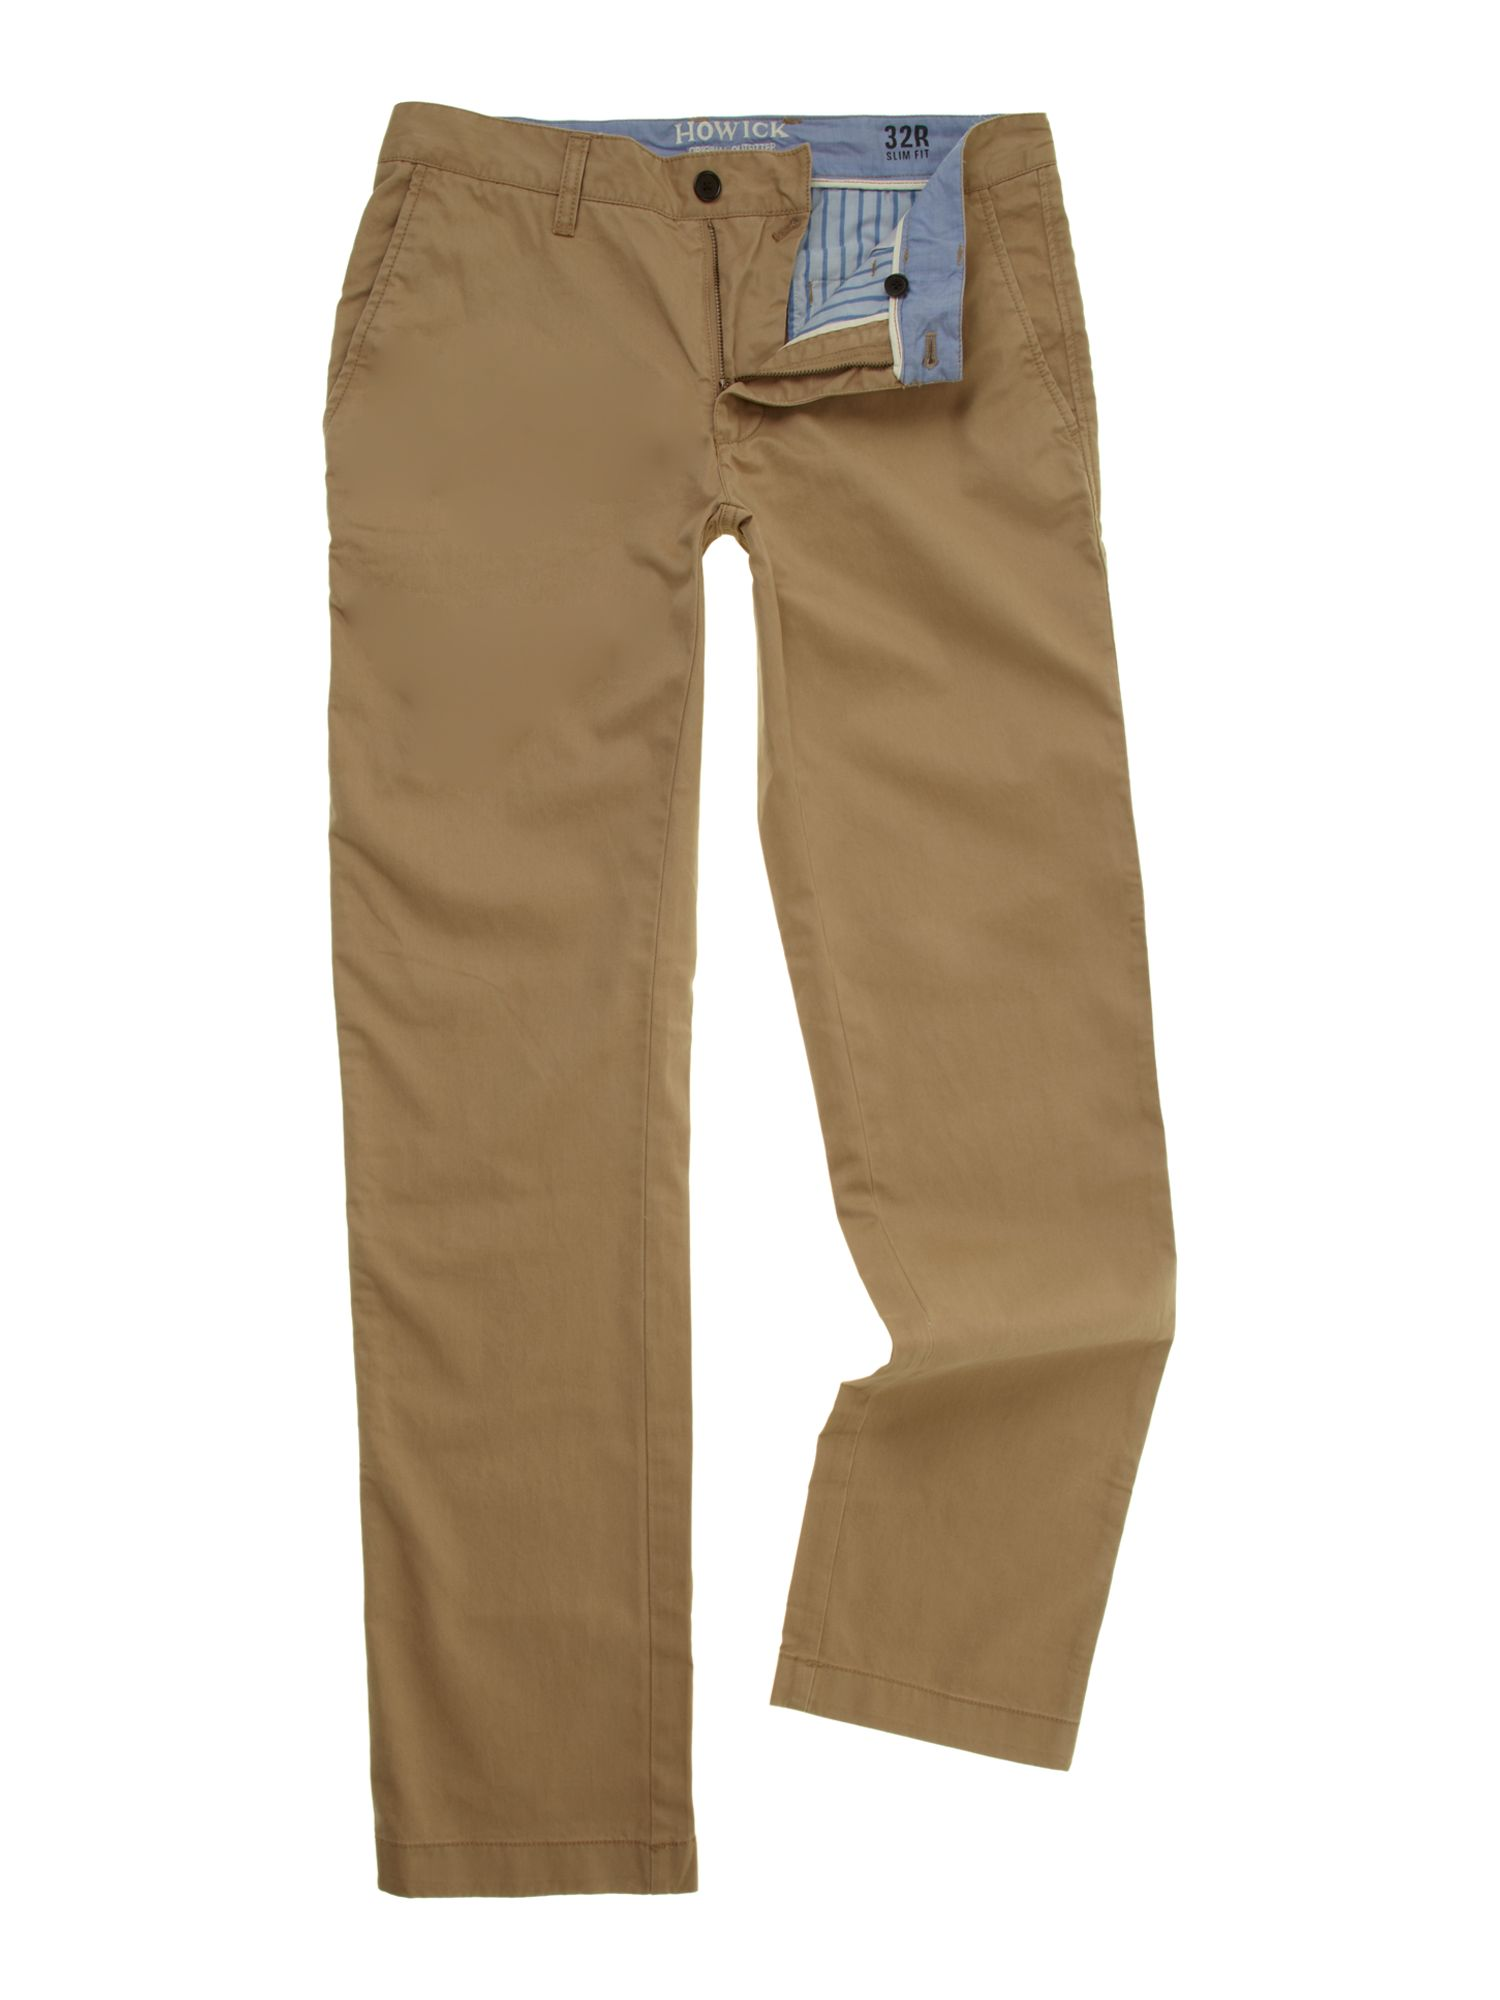 Casual chino slim fit